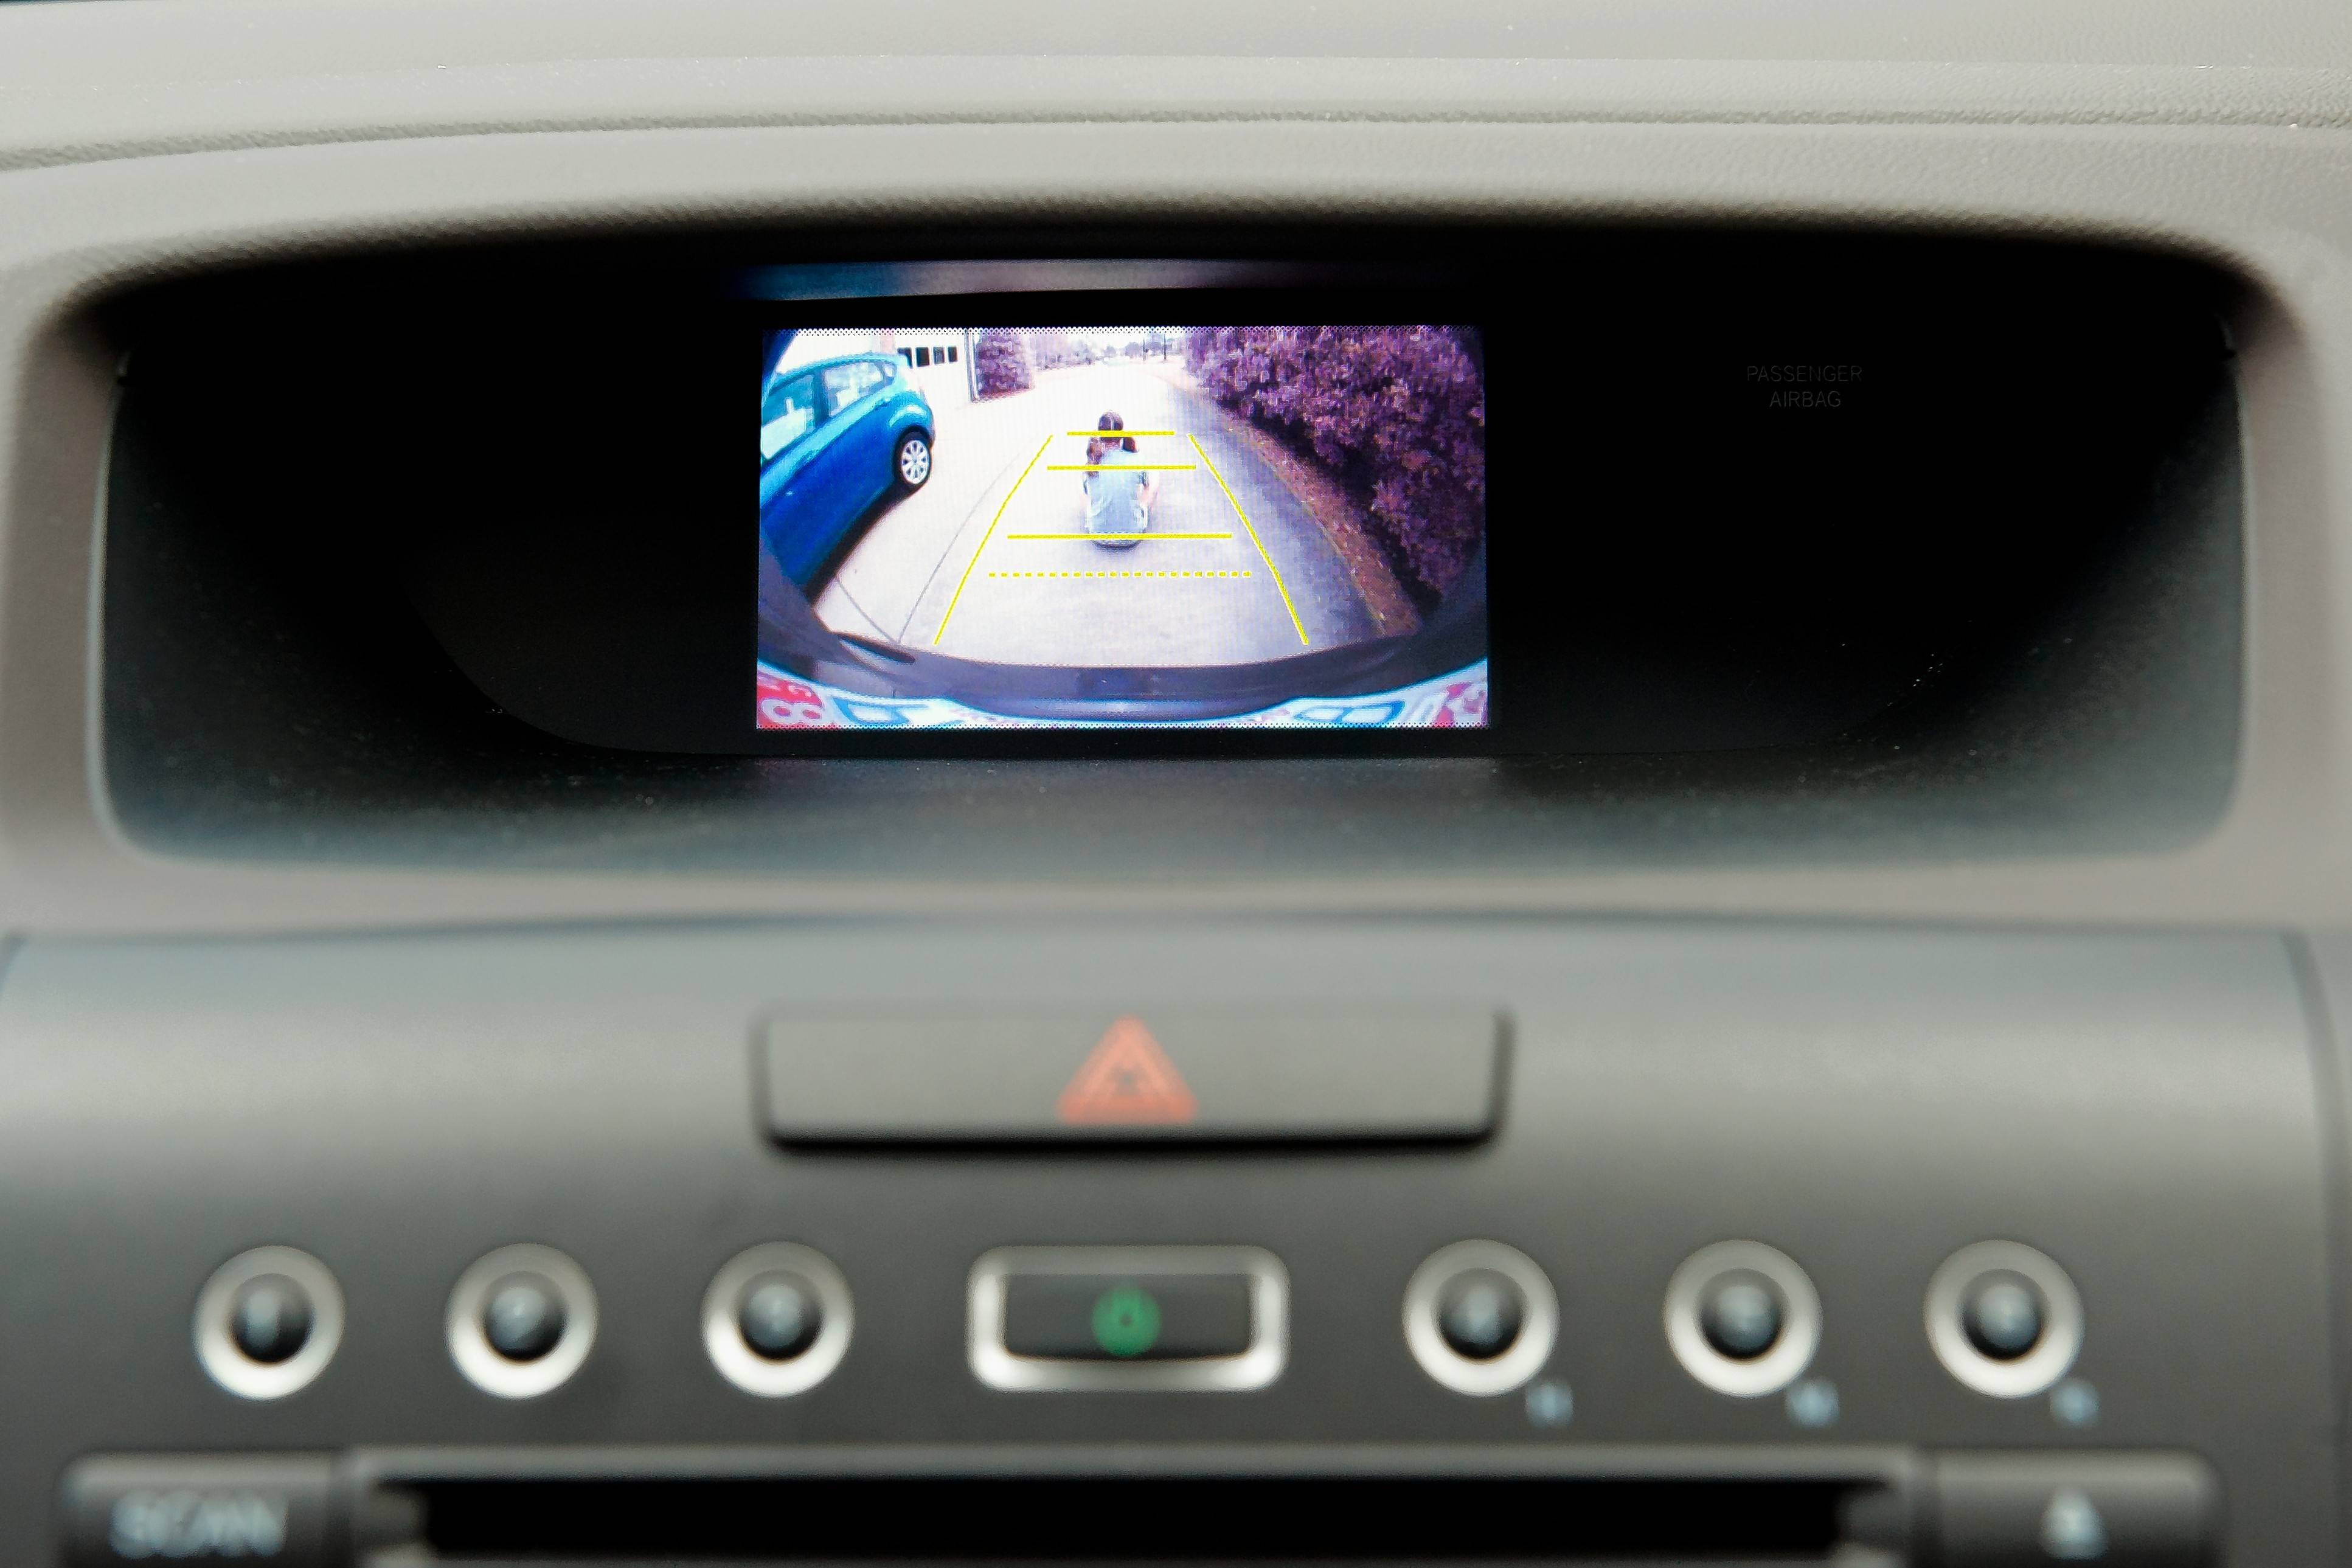 Between 2008 and 2011 — the most recent years for which data was made available by NHTSA — back-up cameras more than doubled from 32 percent to 68 percent of all new cars sold. But injuries fell less than 8 percent, from about 13,000 down to 12,000. The improvement in safety has been very gradual from year to year.